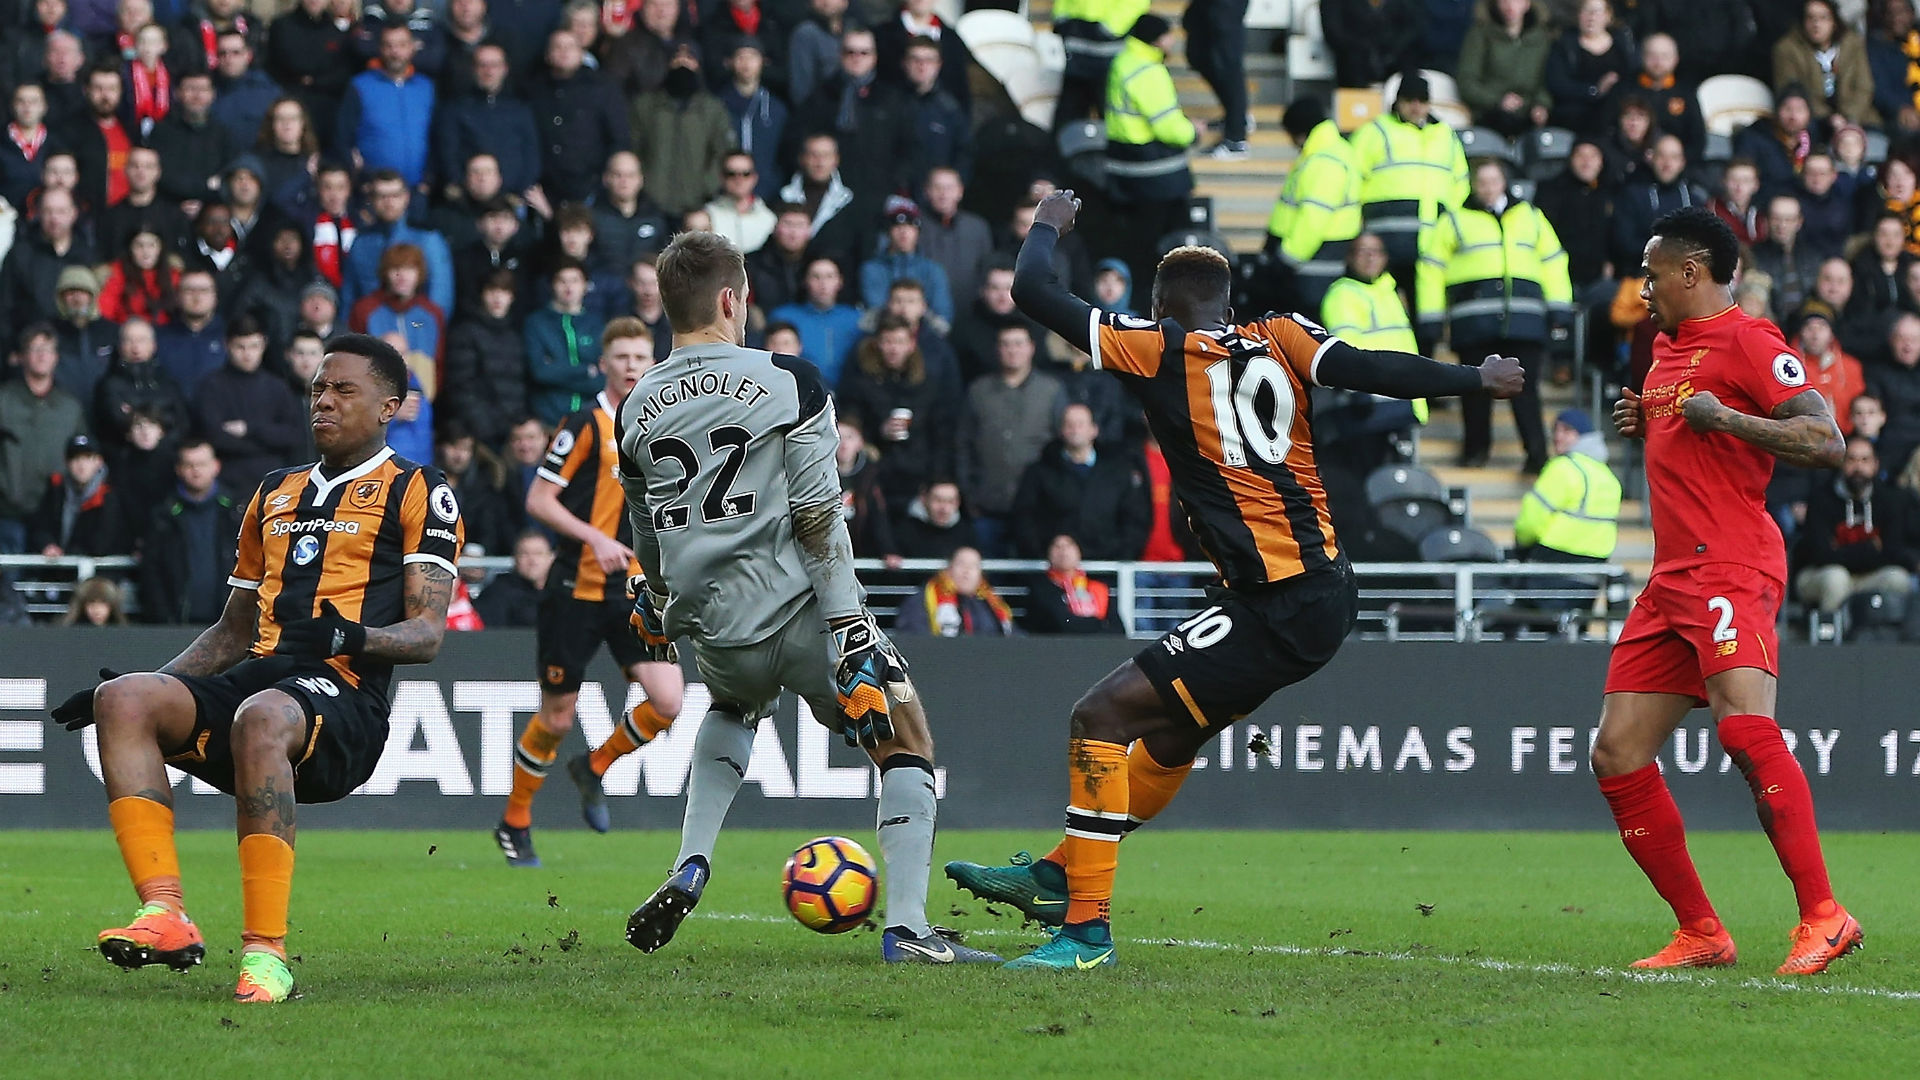 http://images.performgroup.com/di/library/GOAL/ce/e1/alfred-ndiaye-premier-league-hull-city-v-liverpool-040217_q23fu7ybpf3l1tay30he2pnfj.jpg?t=165637258